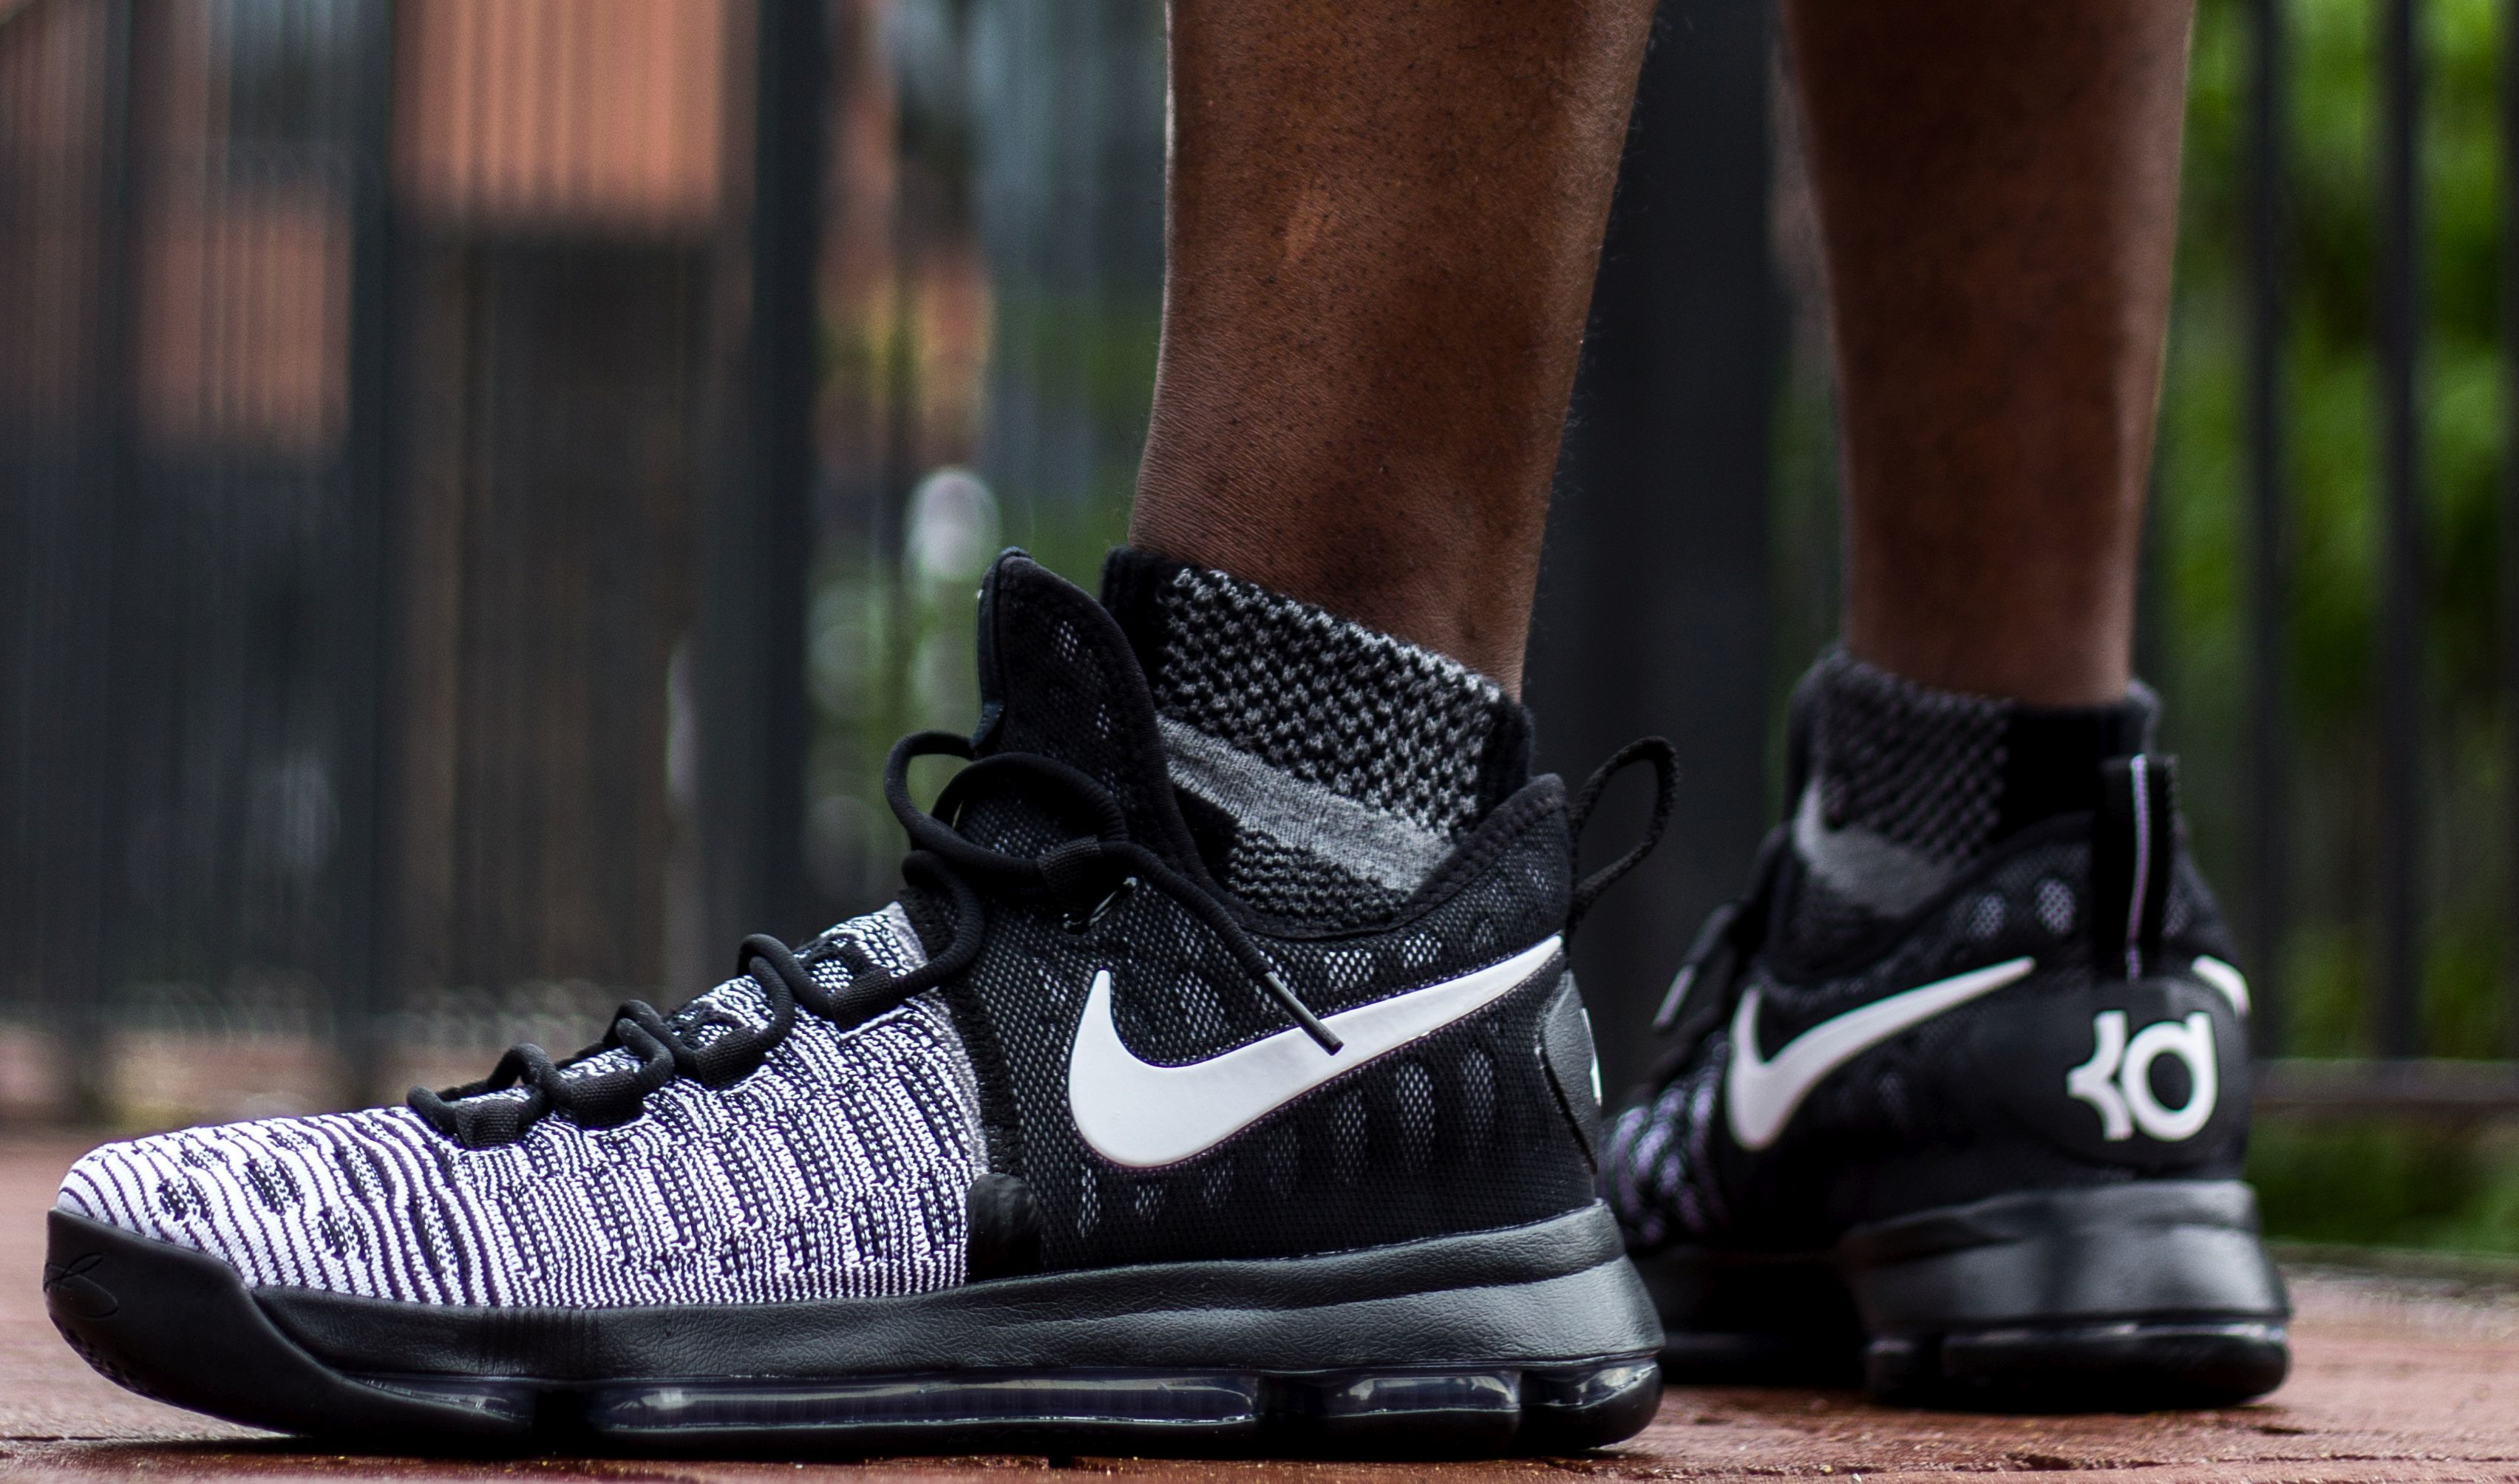 buy online a20a0 d2d1b Check Out These On-Feet Images Of The Black  White Nike KD 9